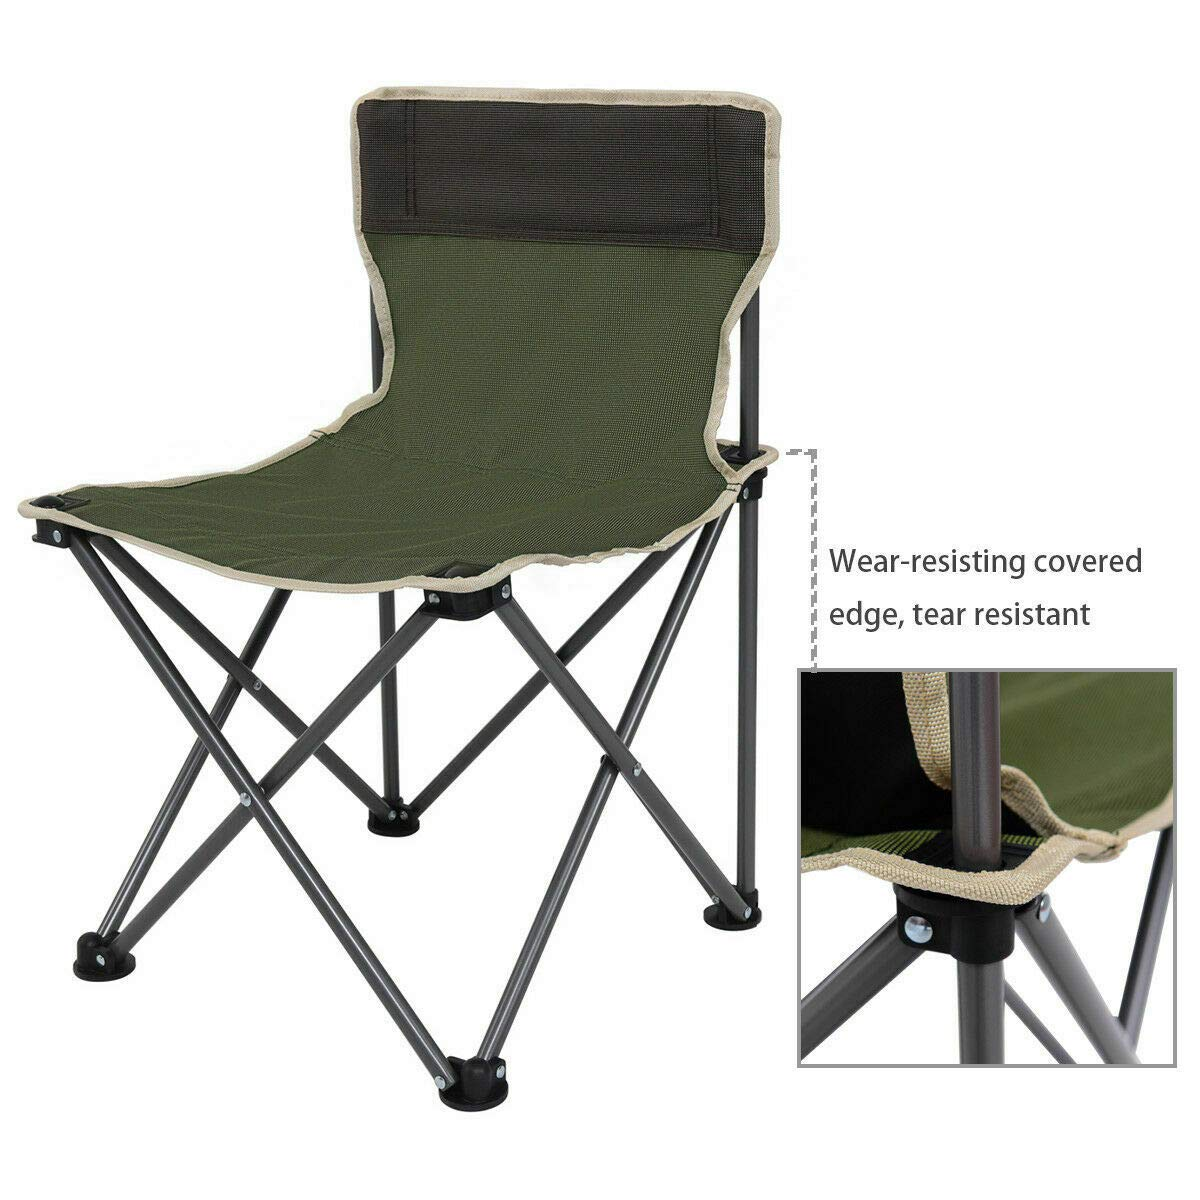 ANA Store Enjoy Barbecue Party Curl Stand Iron Stell Frame Green Oxford Portable Folding Table Chairs Set Inside Outside Camp Beach Picnic with Carrying Bag by ANA Store (Image #7)